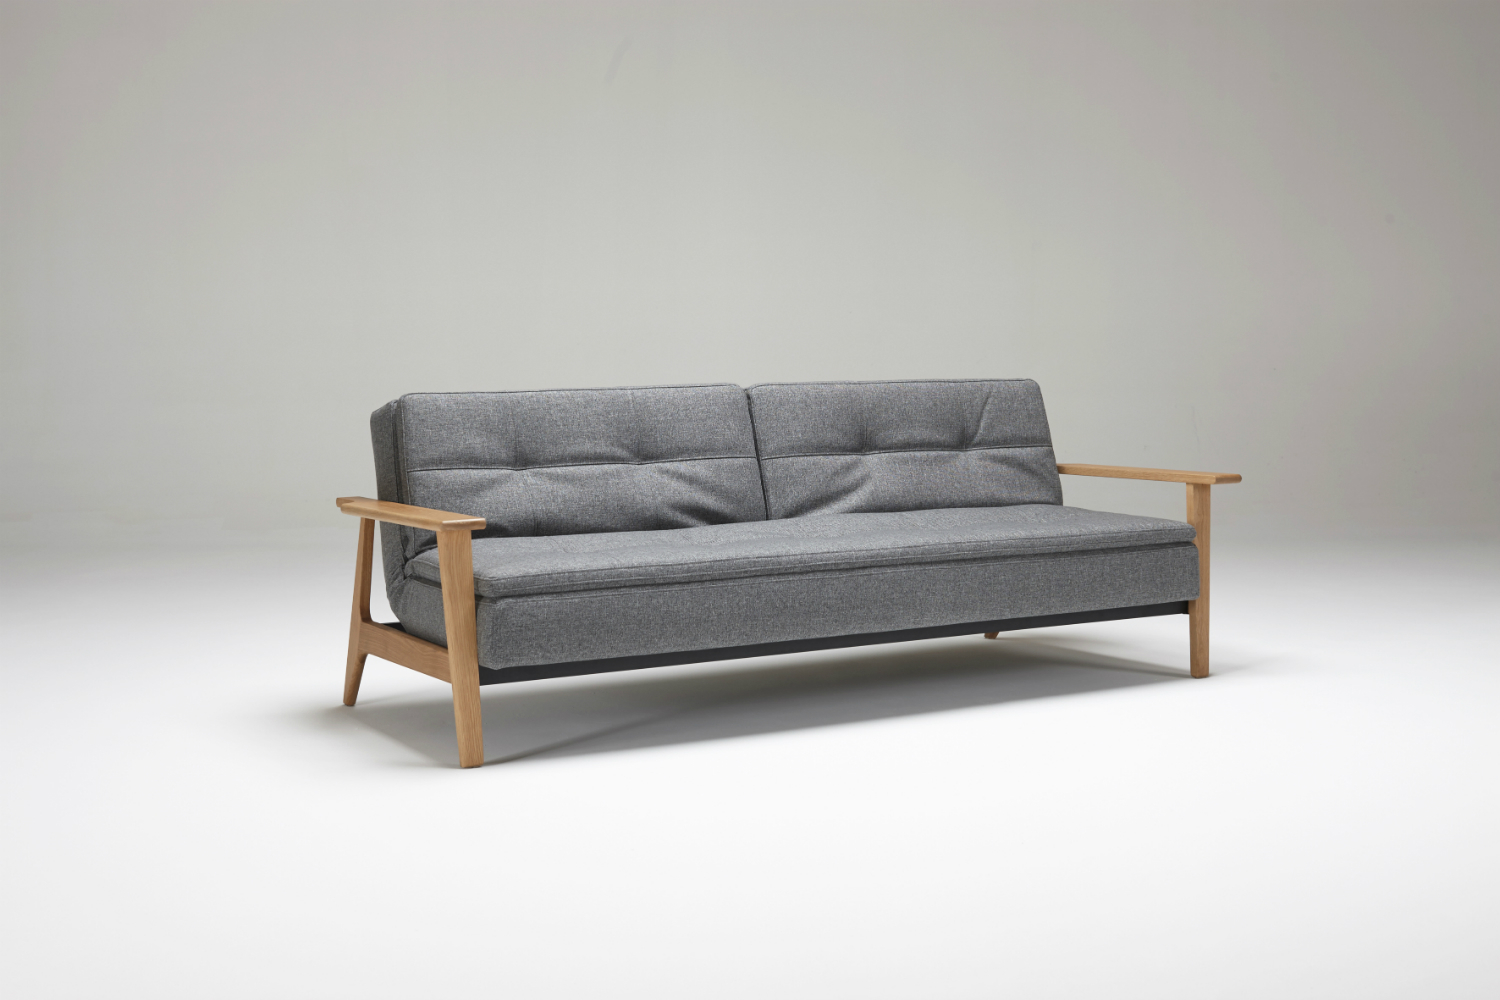 Sofa bed australia idun sofa bed innovation living for Sofa bed australia